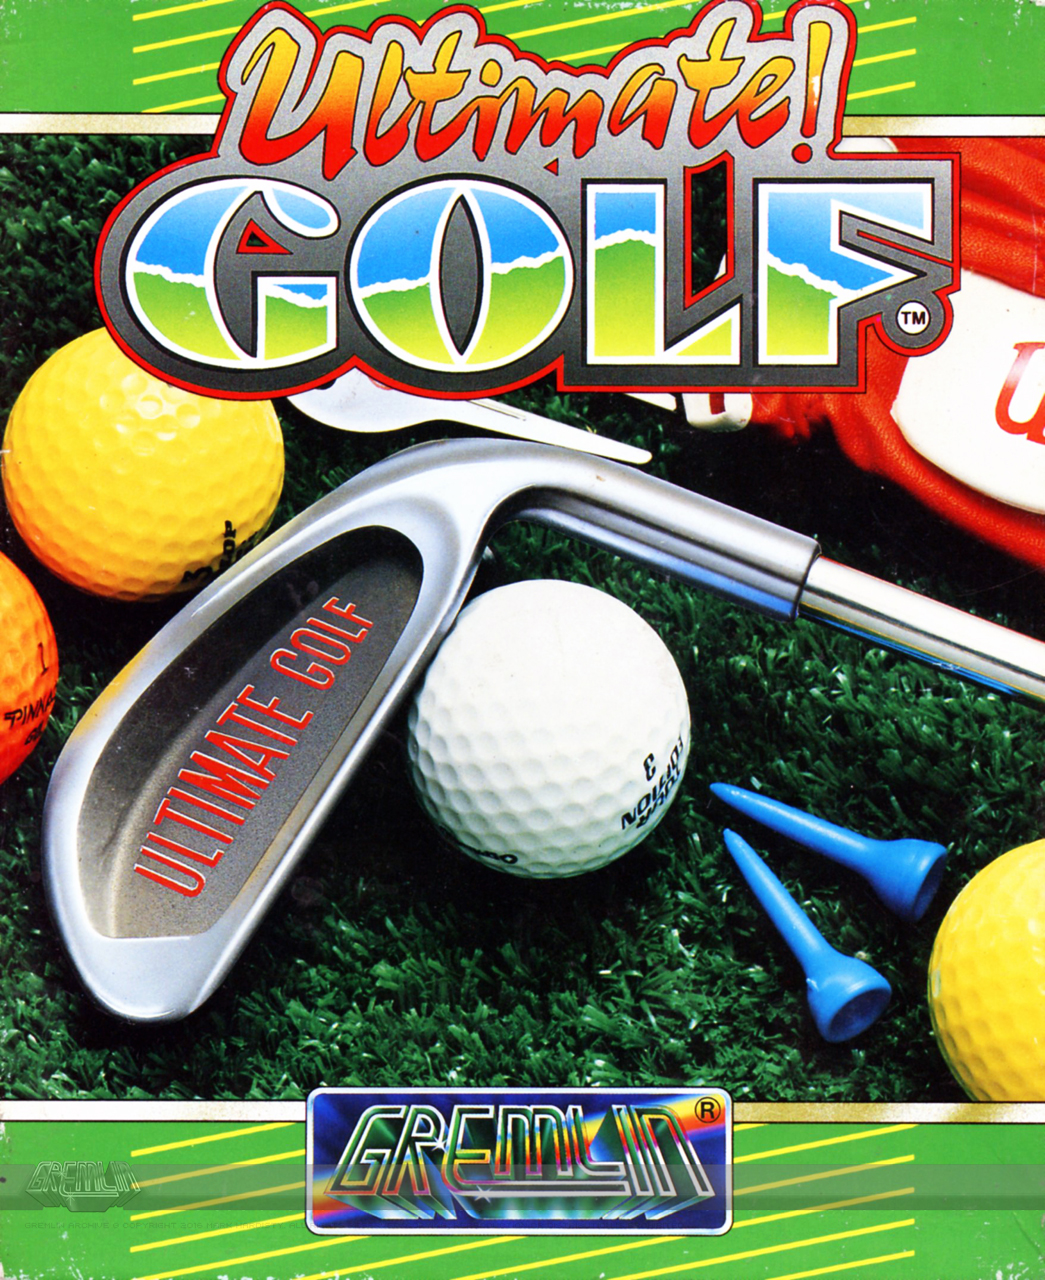 Ultimate Golf (C64)